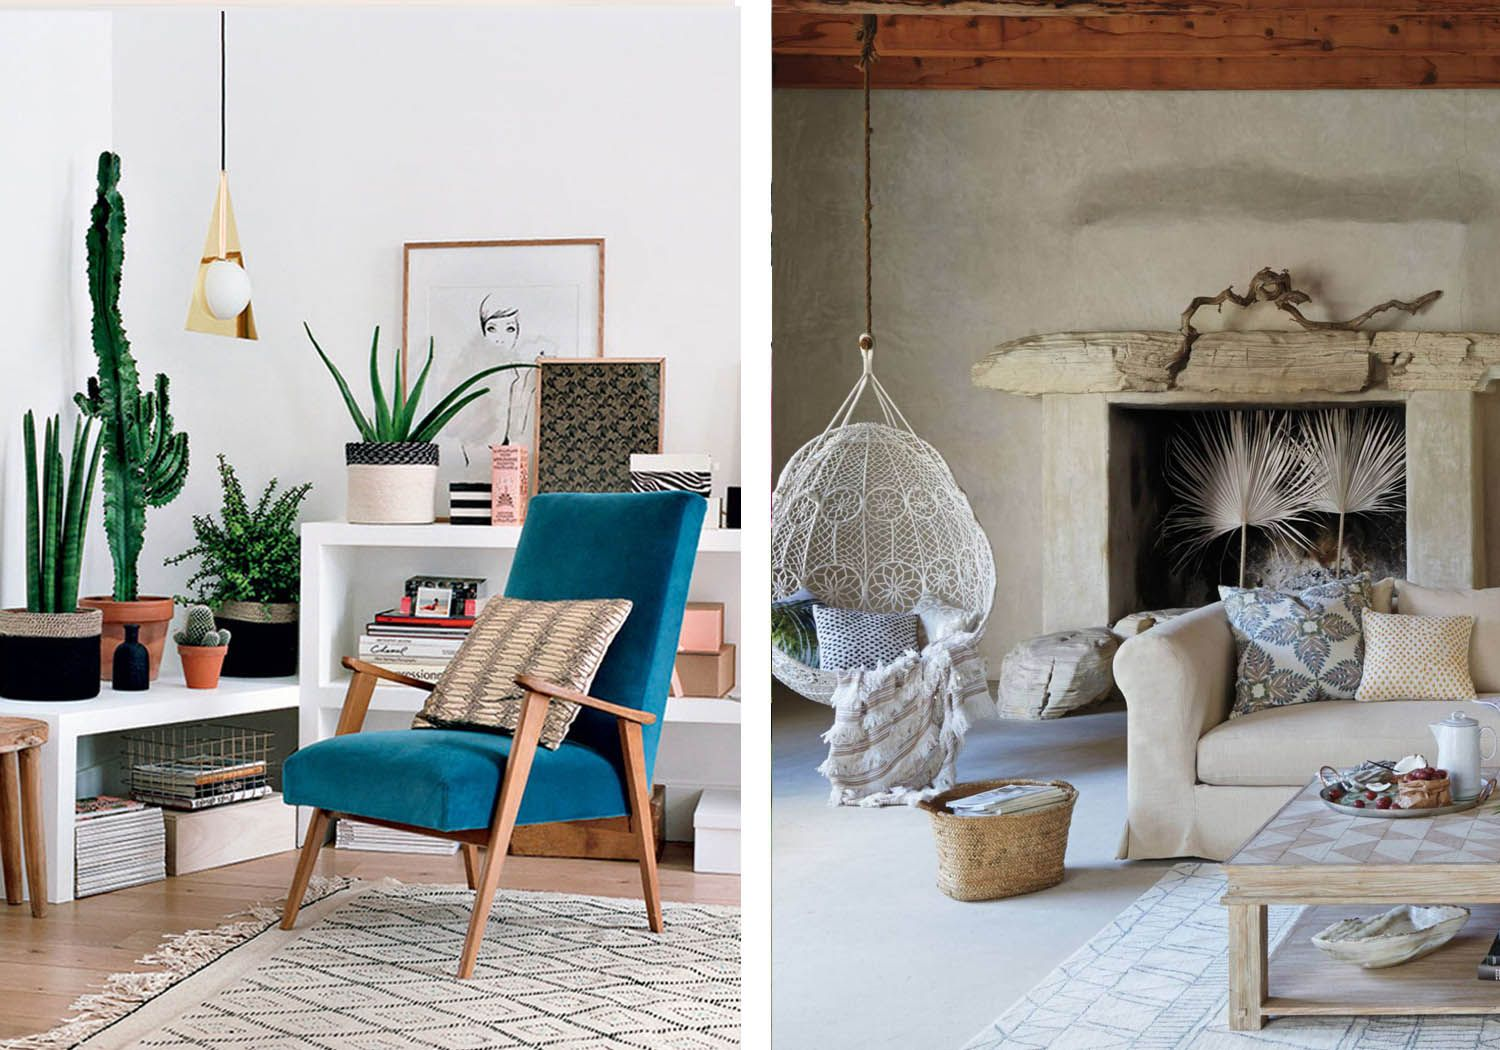 838fb774 The most fashionable individuals have embraced the look in their own homes  ...